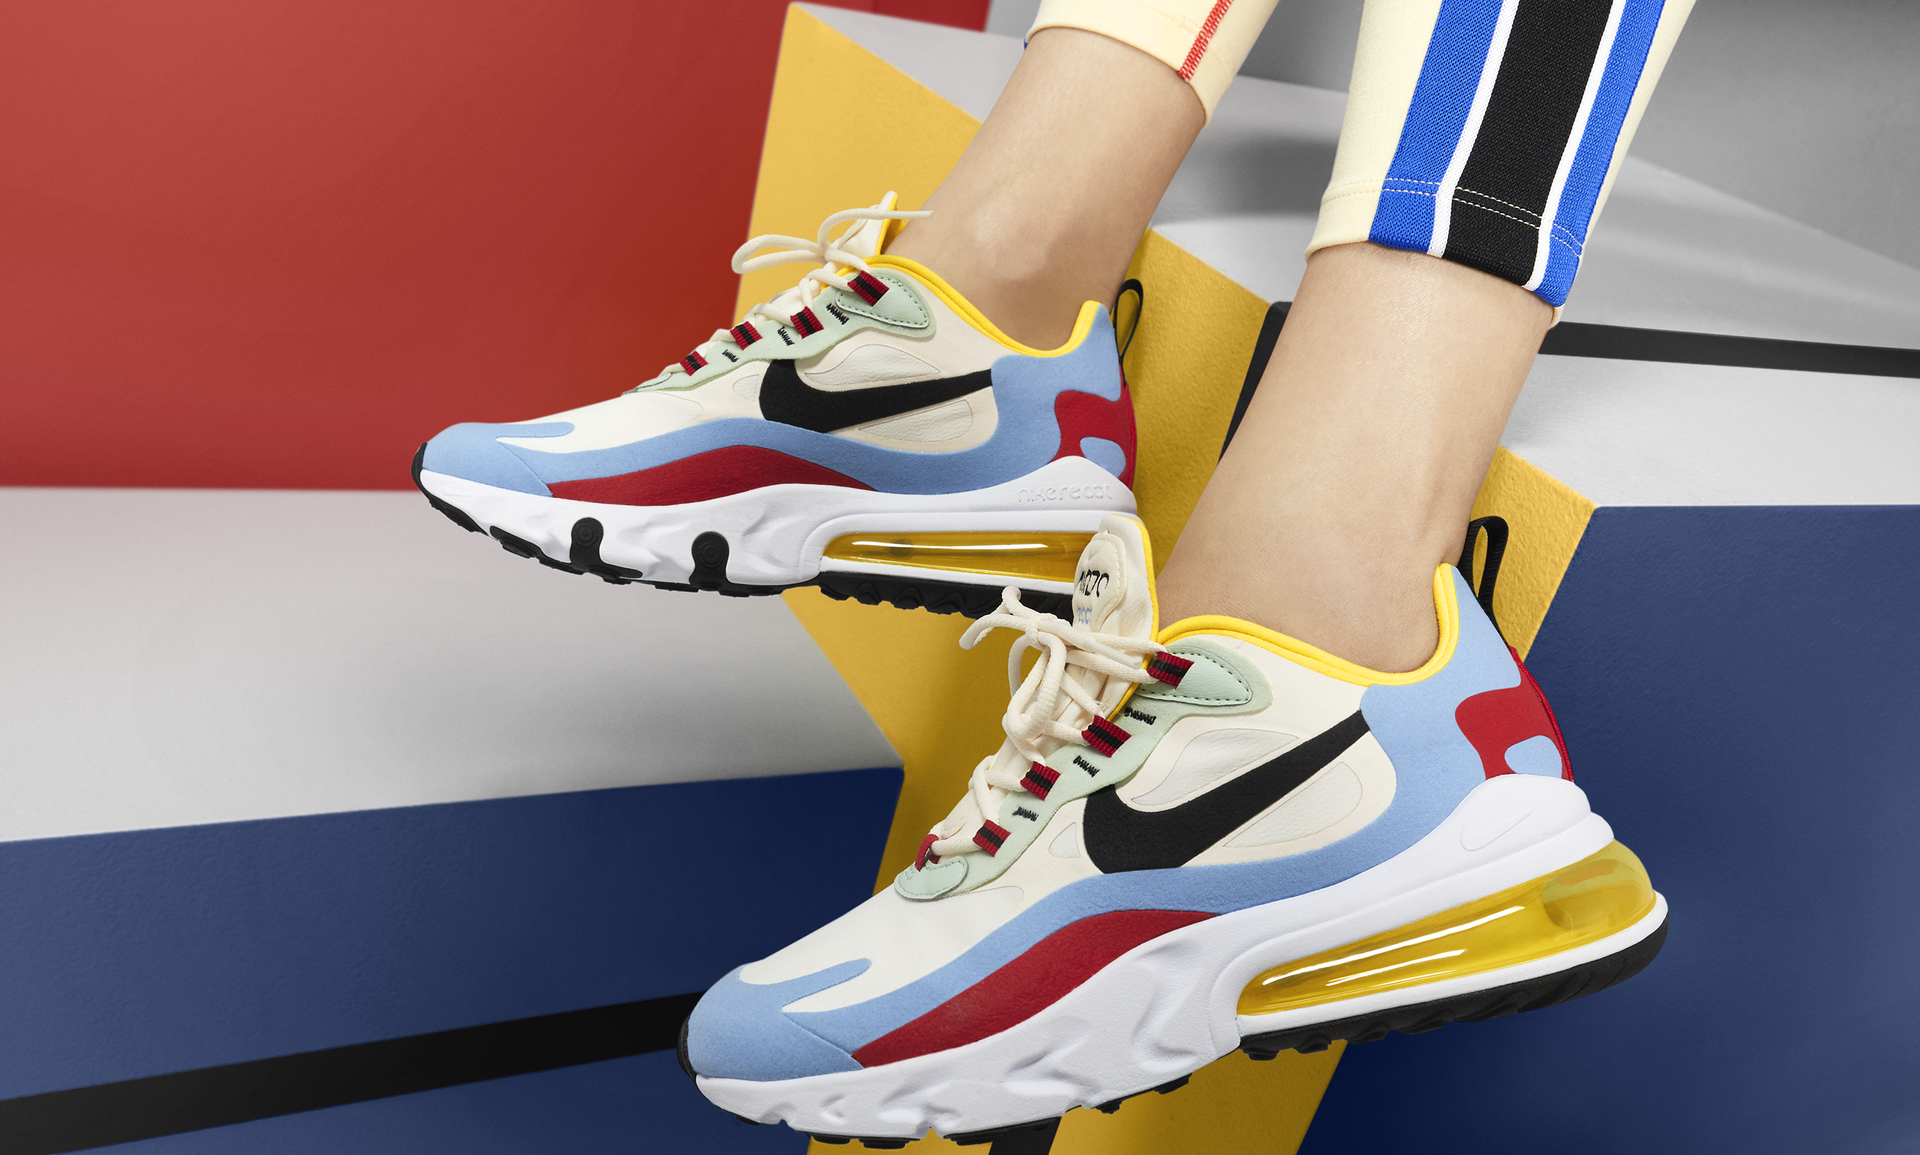 Nike Air Max 270 React WMNS Bauhaus AT6174 002 Release Date